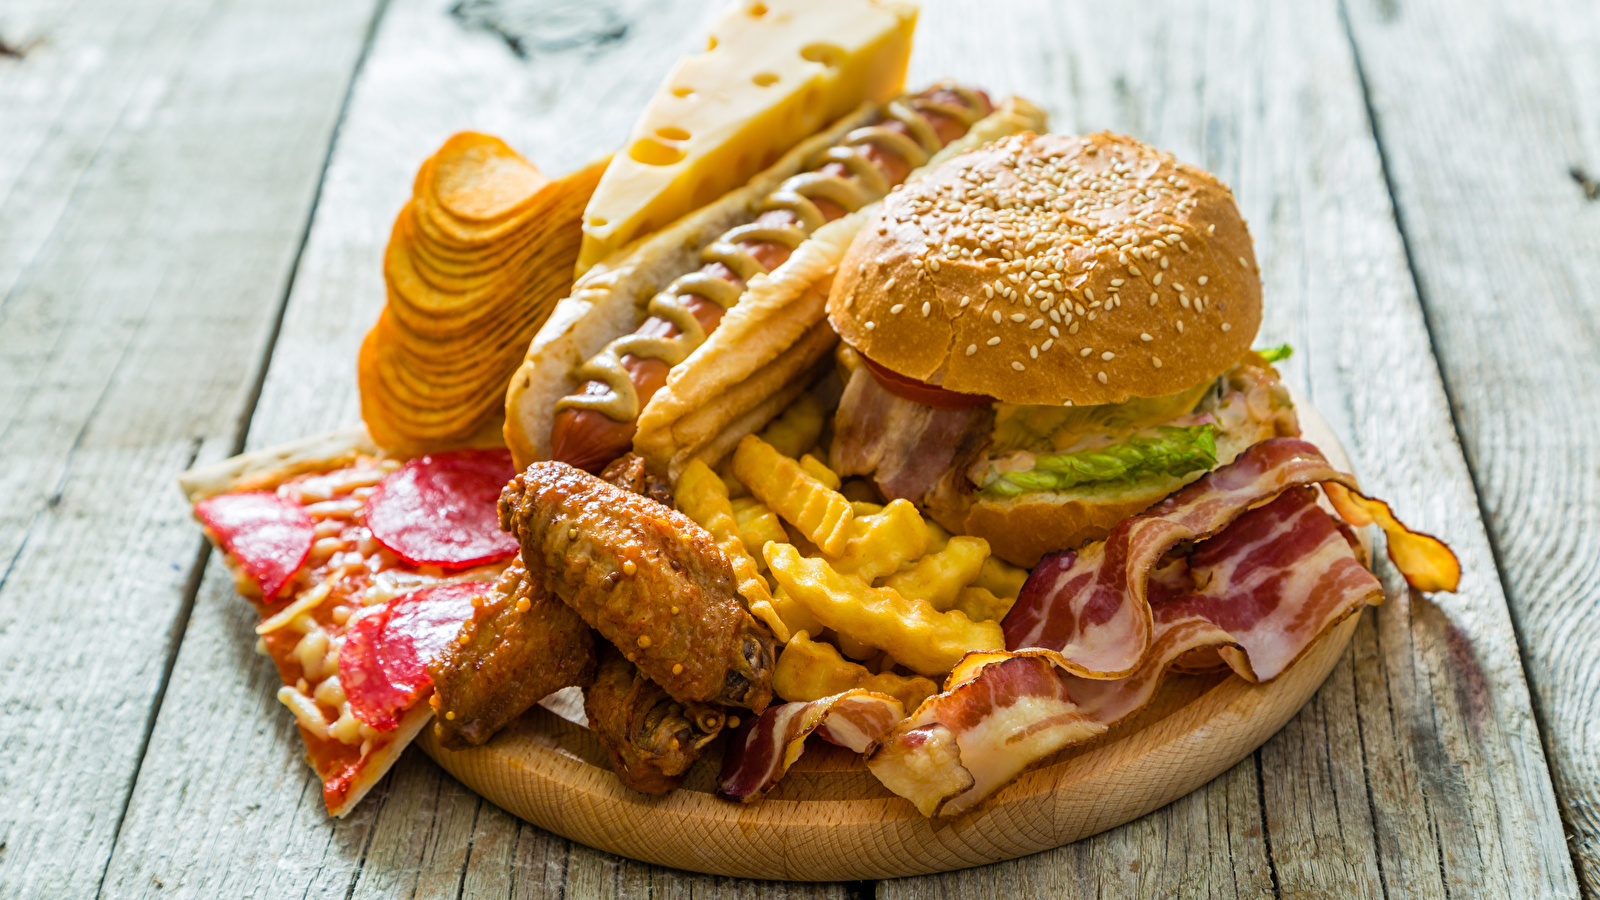 Image Chips Hot dog Hamburger finger chips Cheese Fast food 1600x900 1600x900